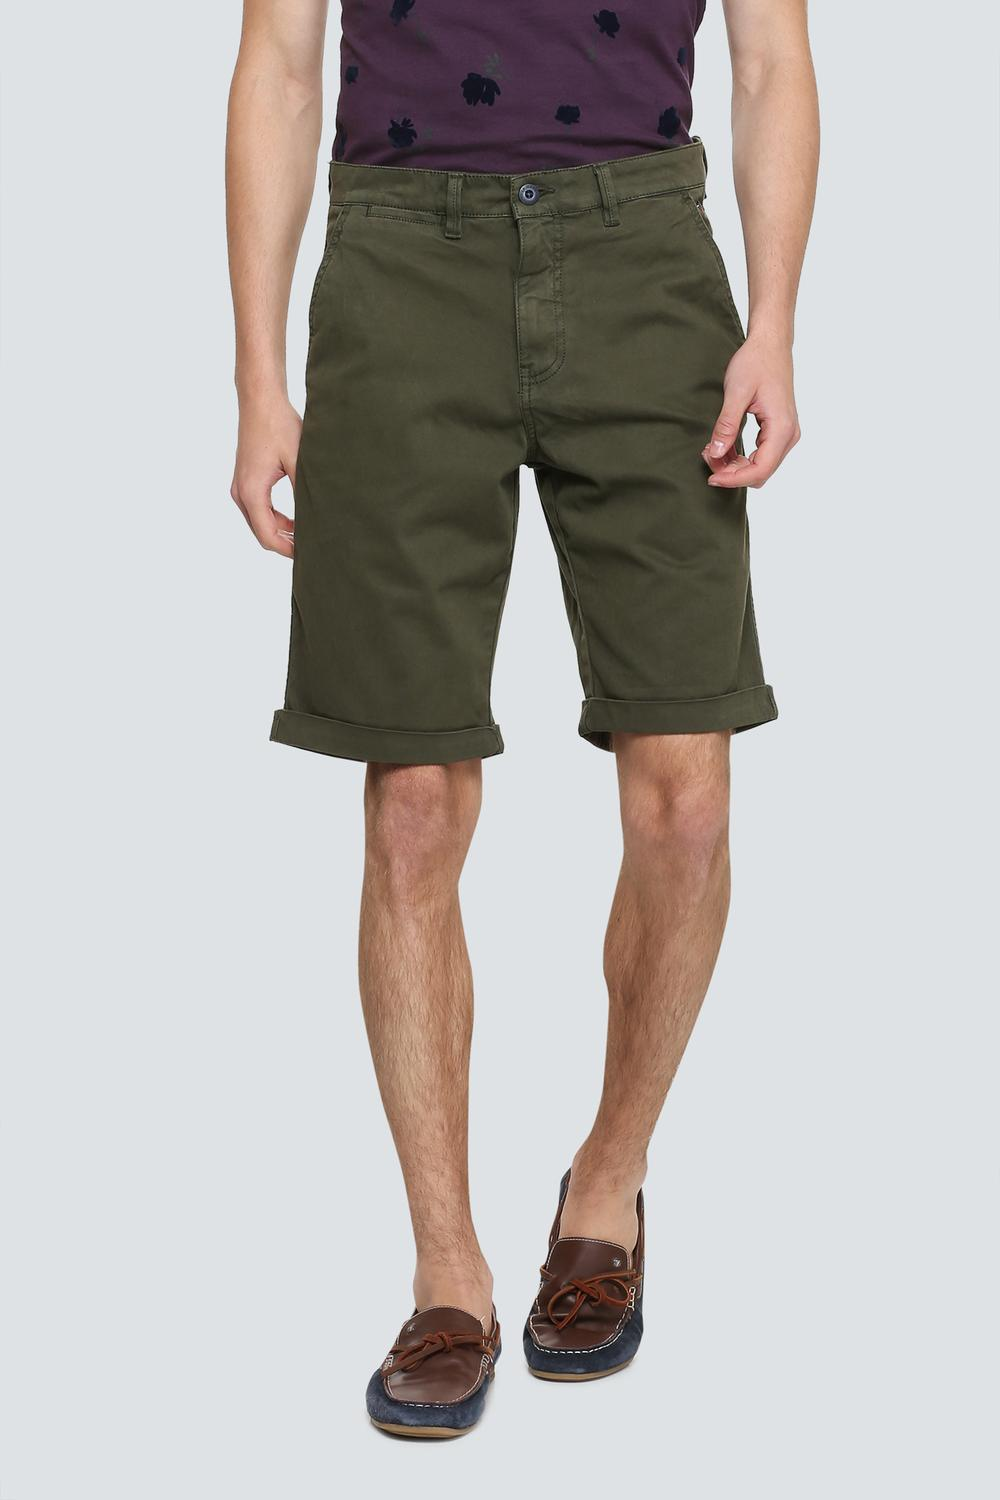 35e8a1f13ab2 LP Jeans Shorts, Louis Philippe Olive Shorts for Men at Louisphilippe.com